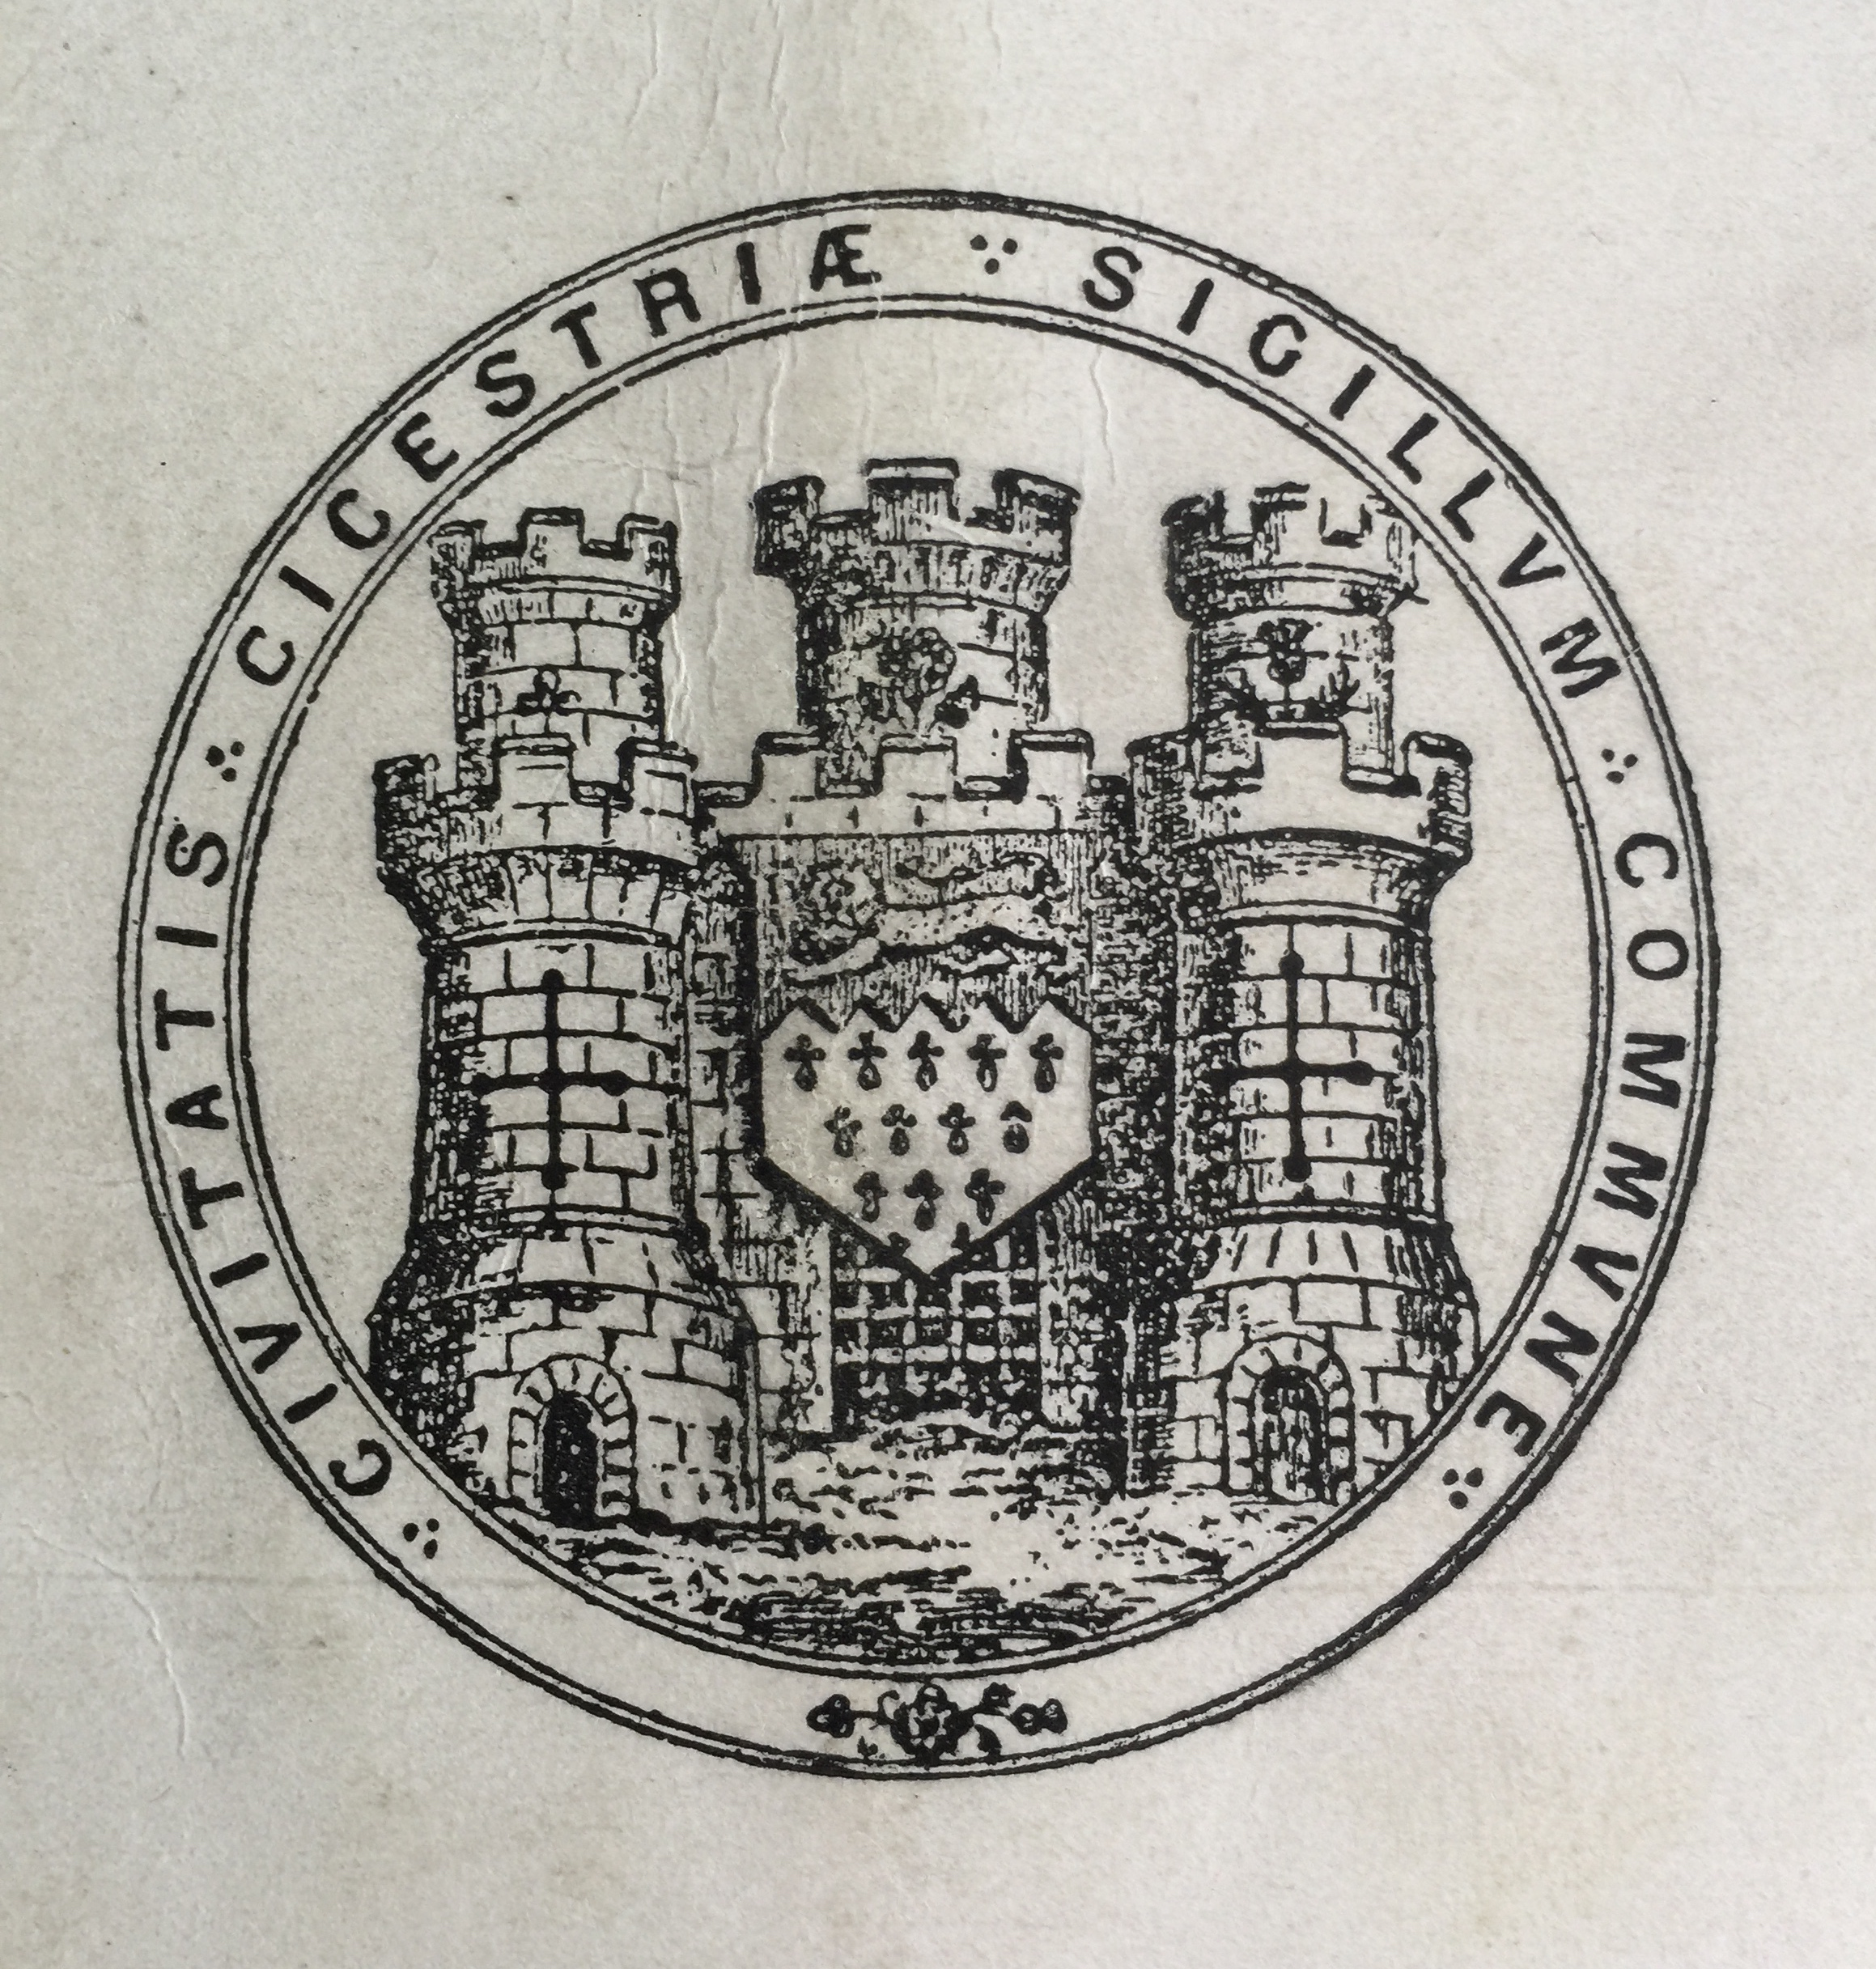 C19th seal of Chichester - Collection Ken Green